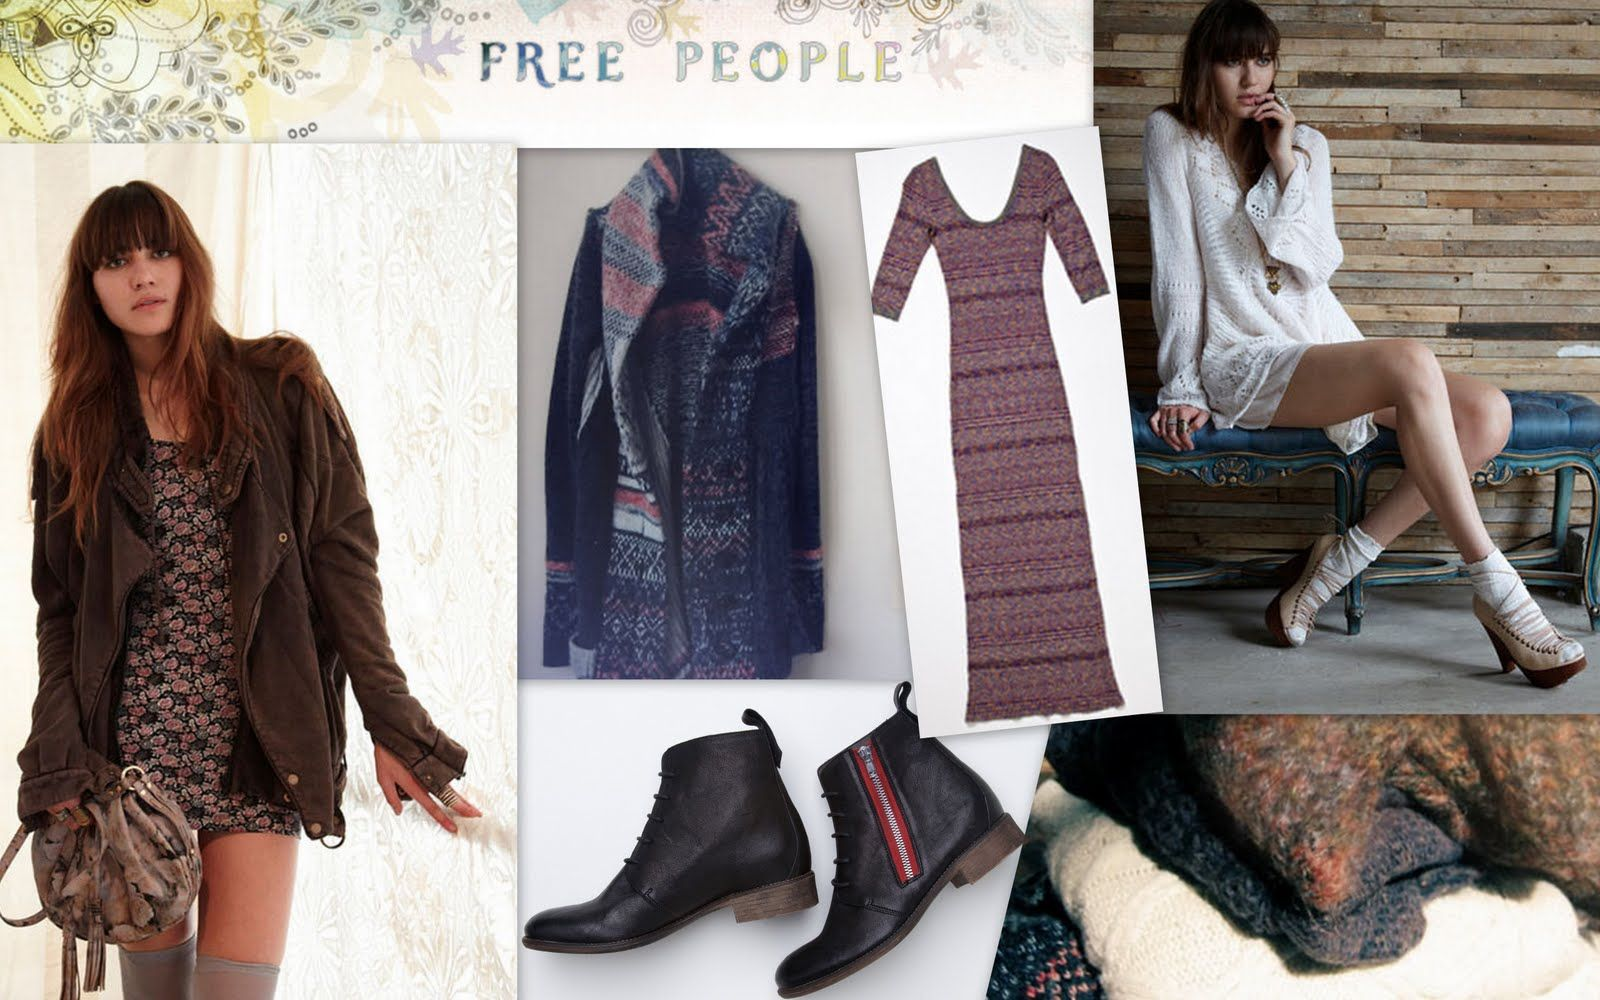 Natalie Off Duty: Free People October 2010 Catalog Preview